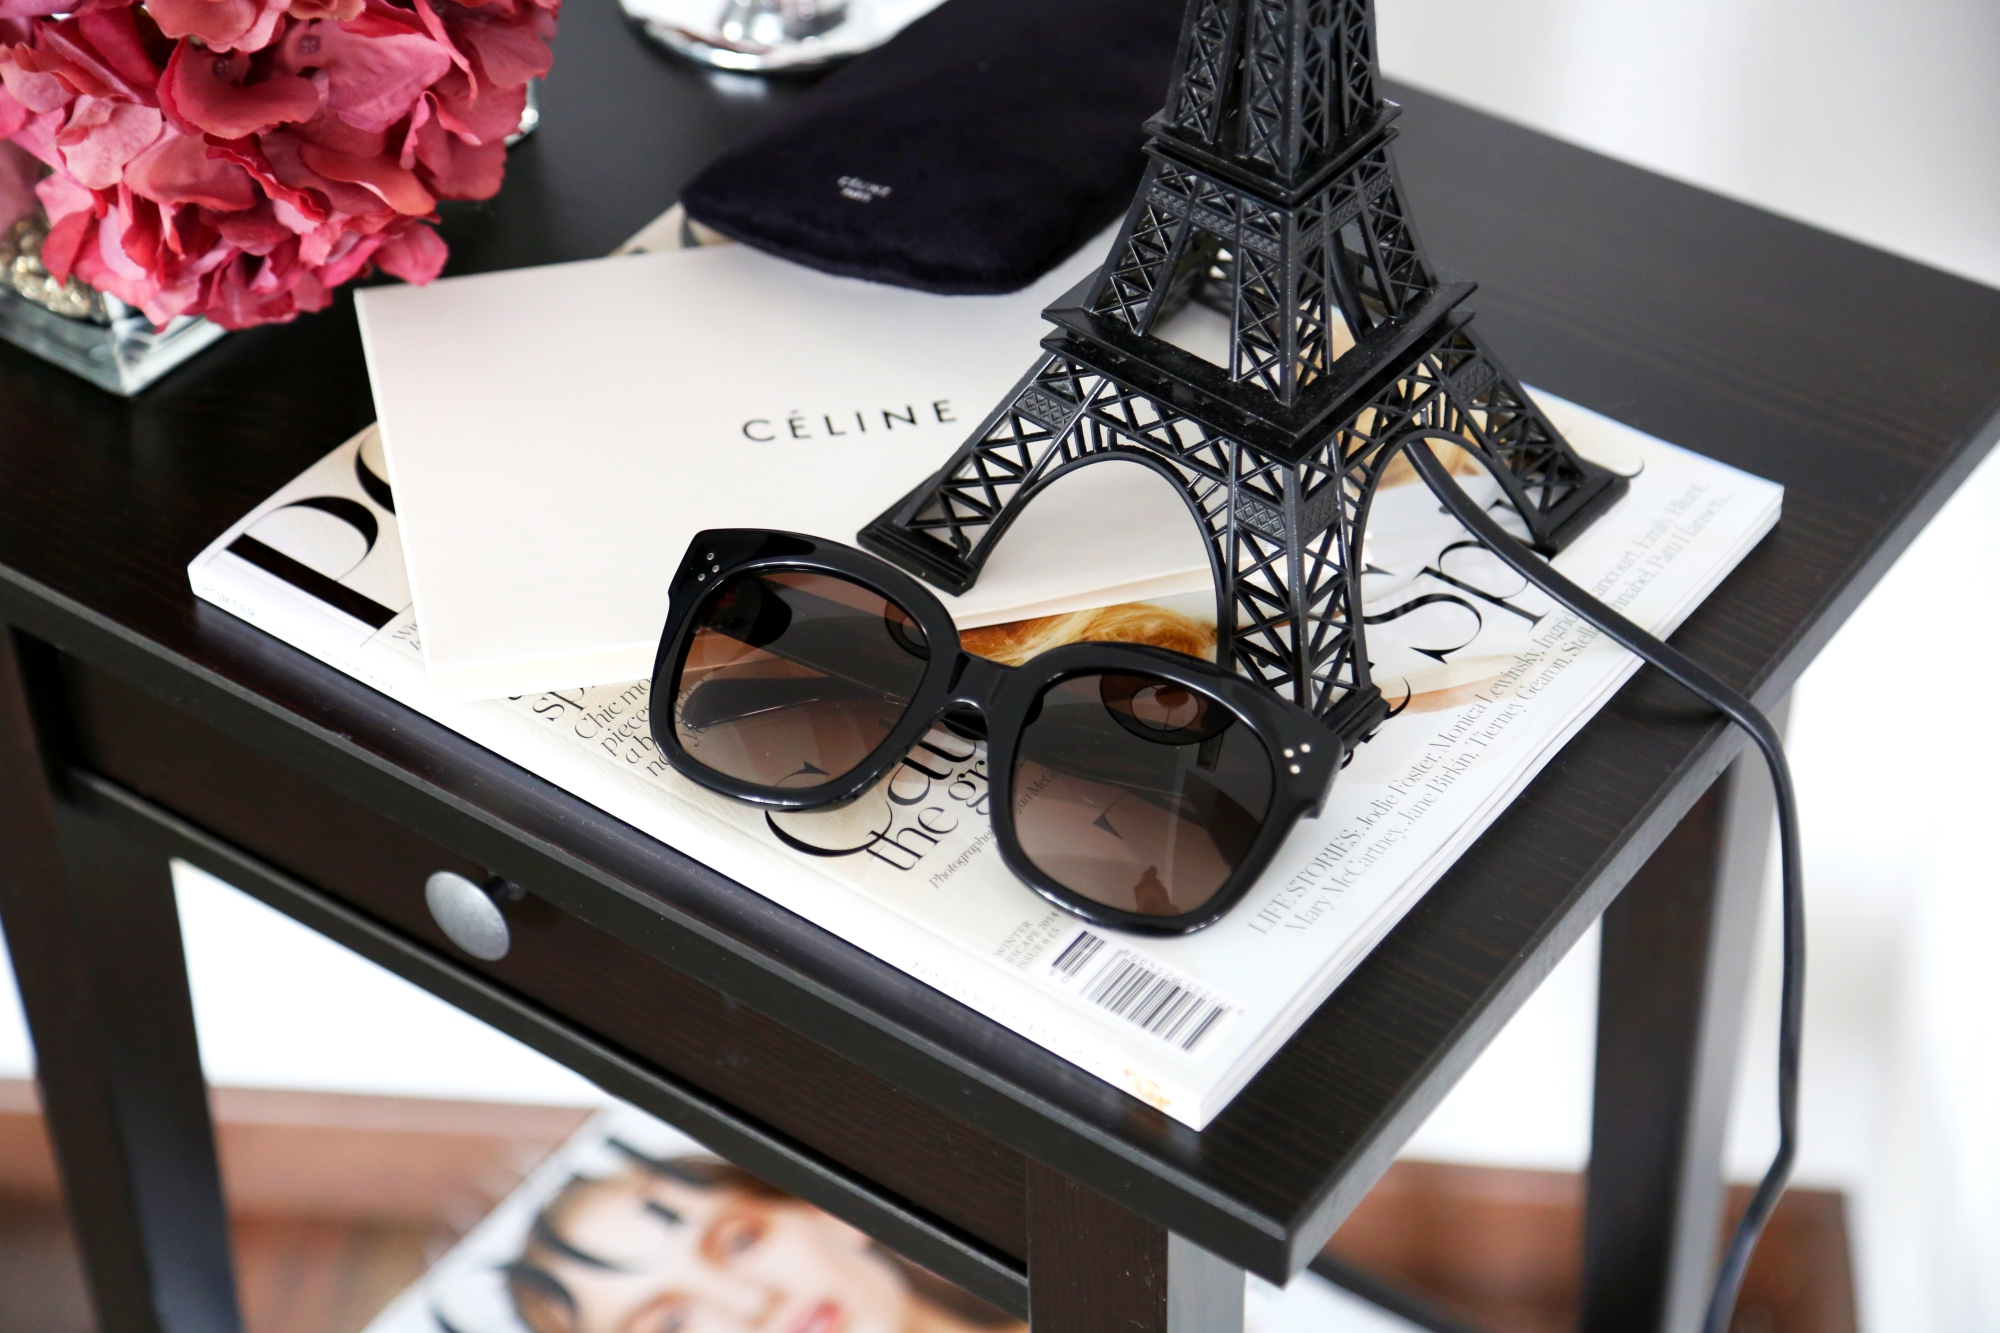 celine luggage phantom suede - New in: C��line New Audrey sunglasses - FashionHippieLoves